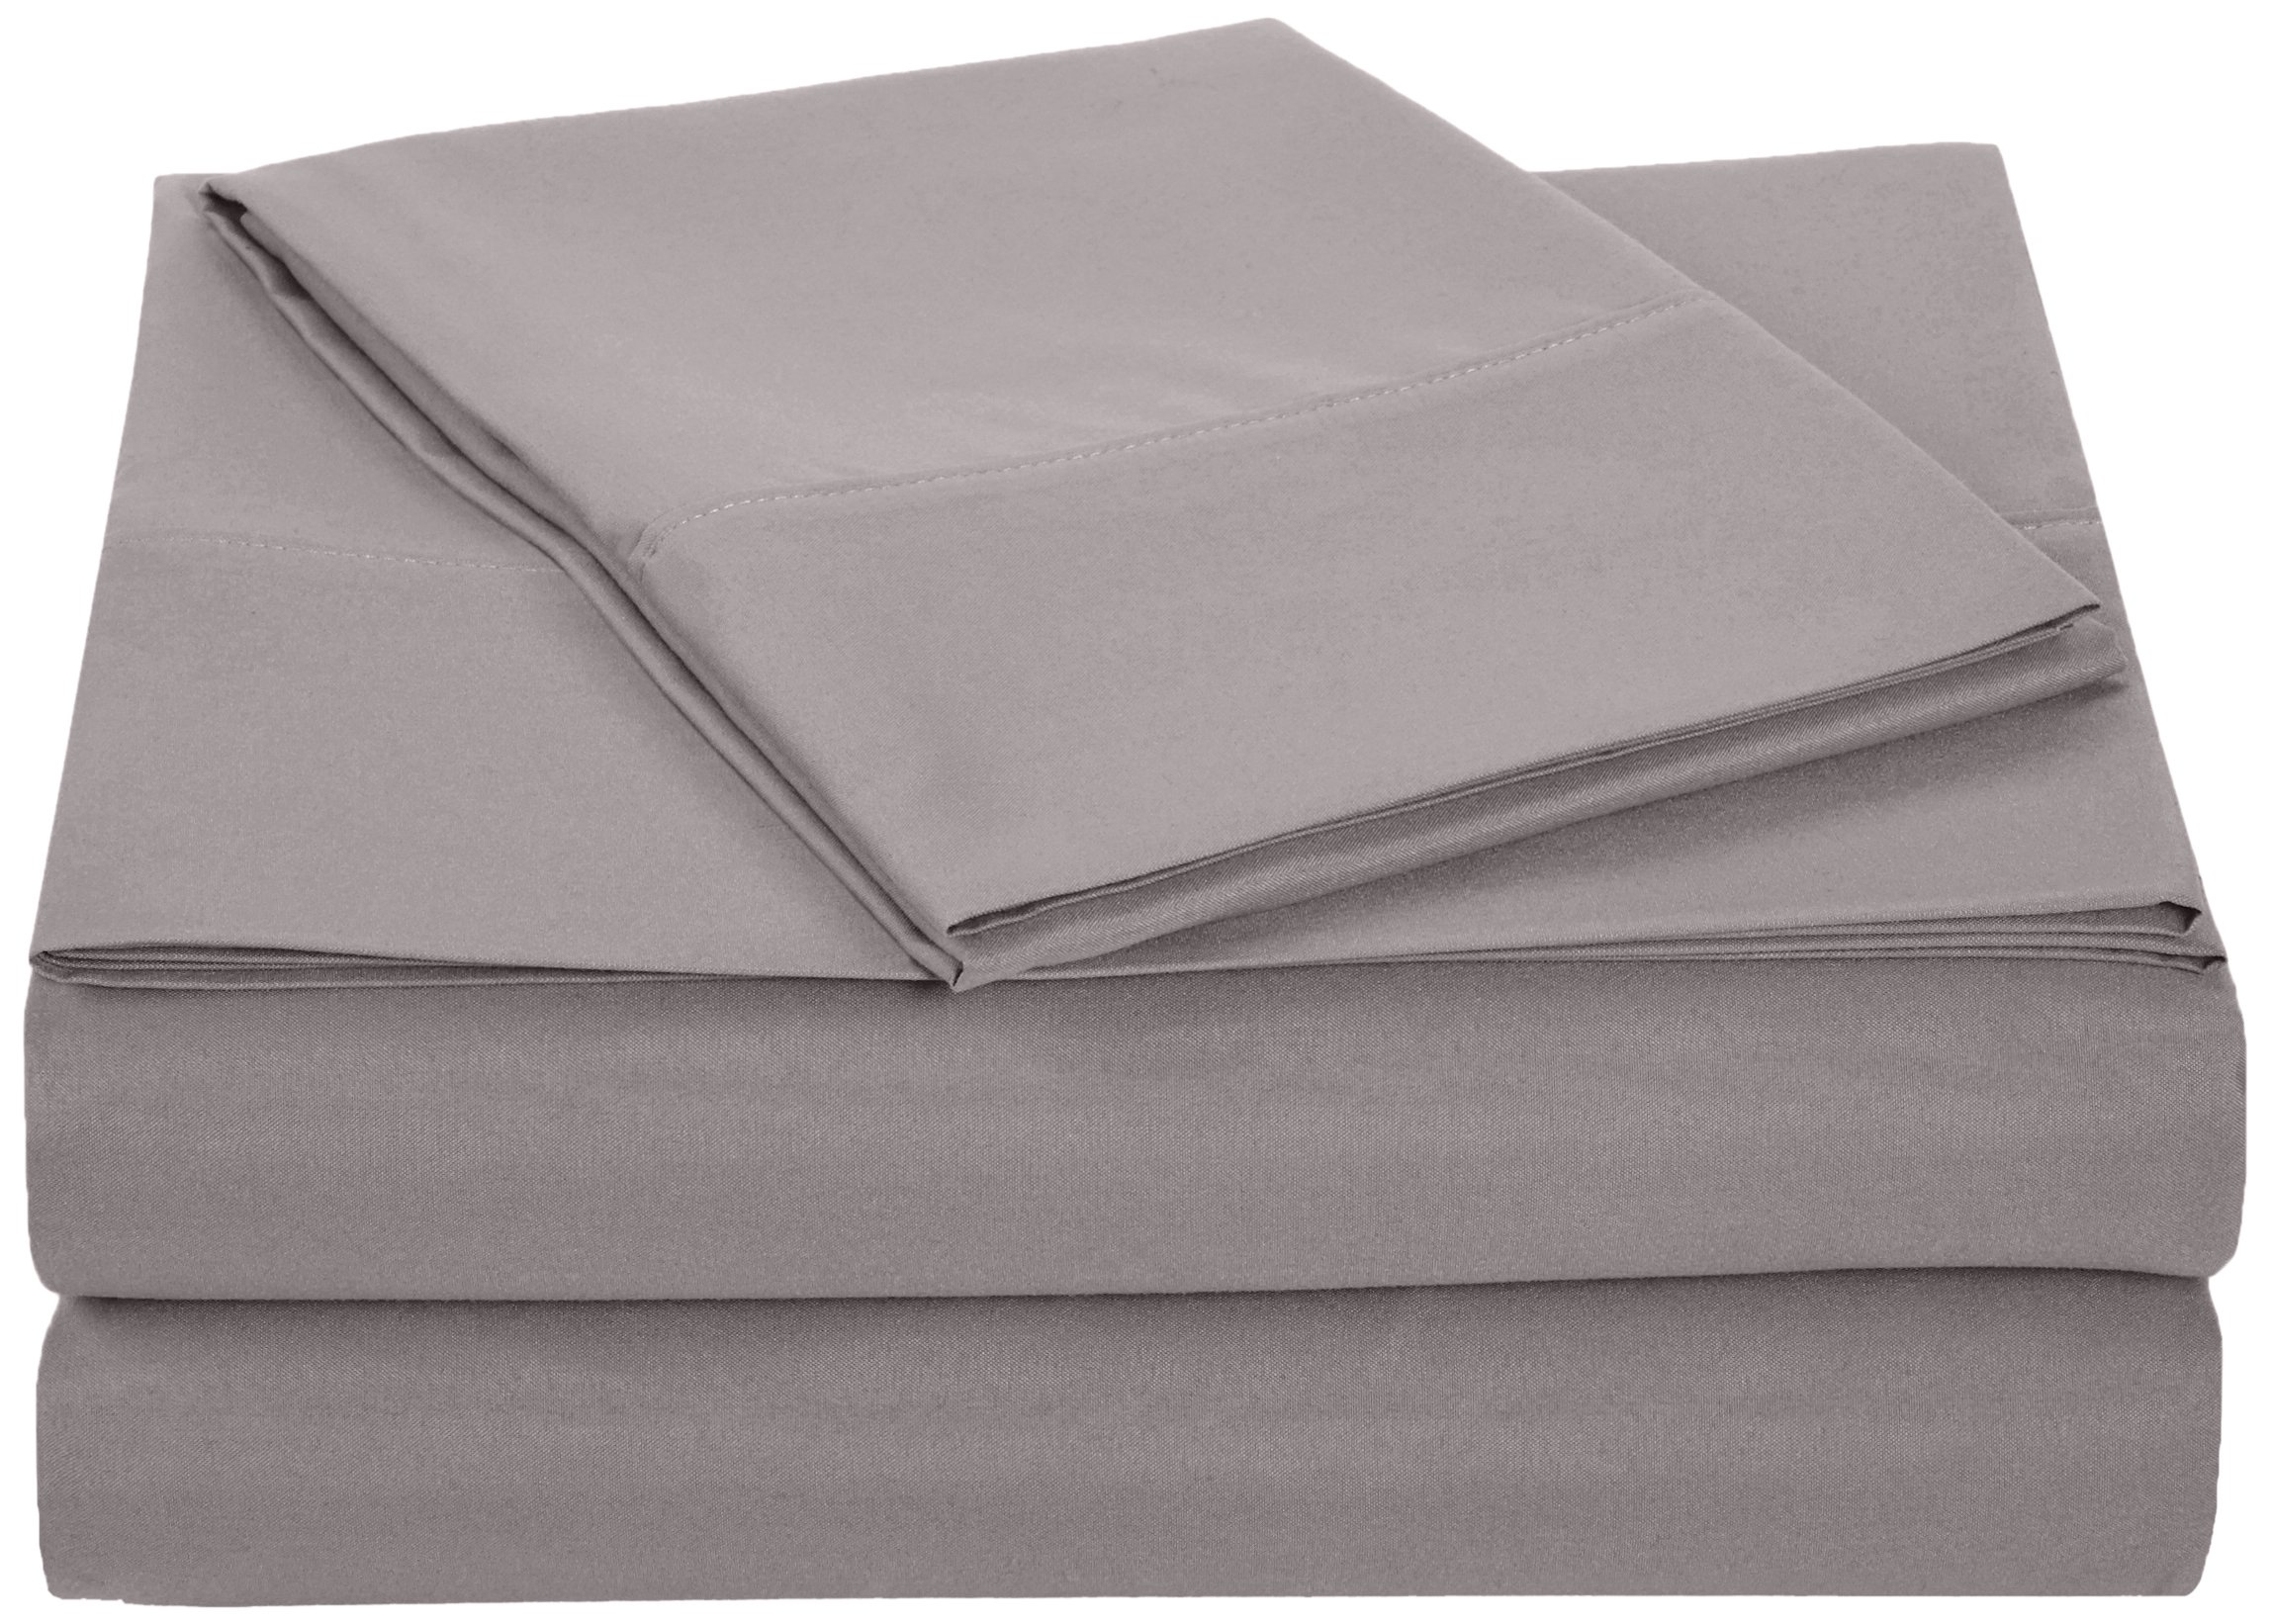 AmazonBasics Microfiber Sheet Set - Twin, Dark Grey by AmazonBasics